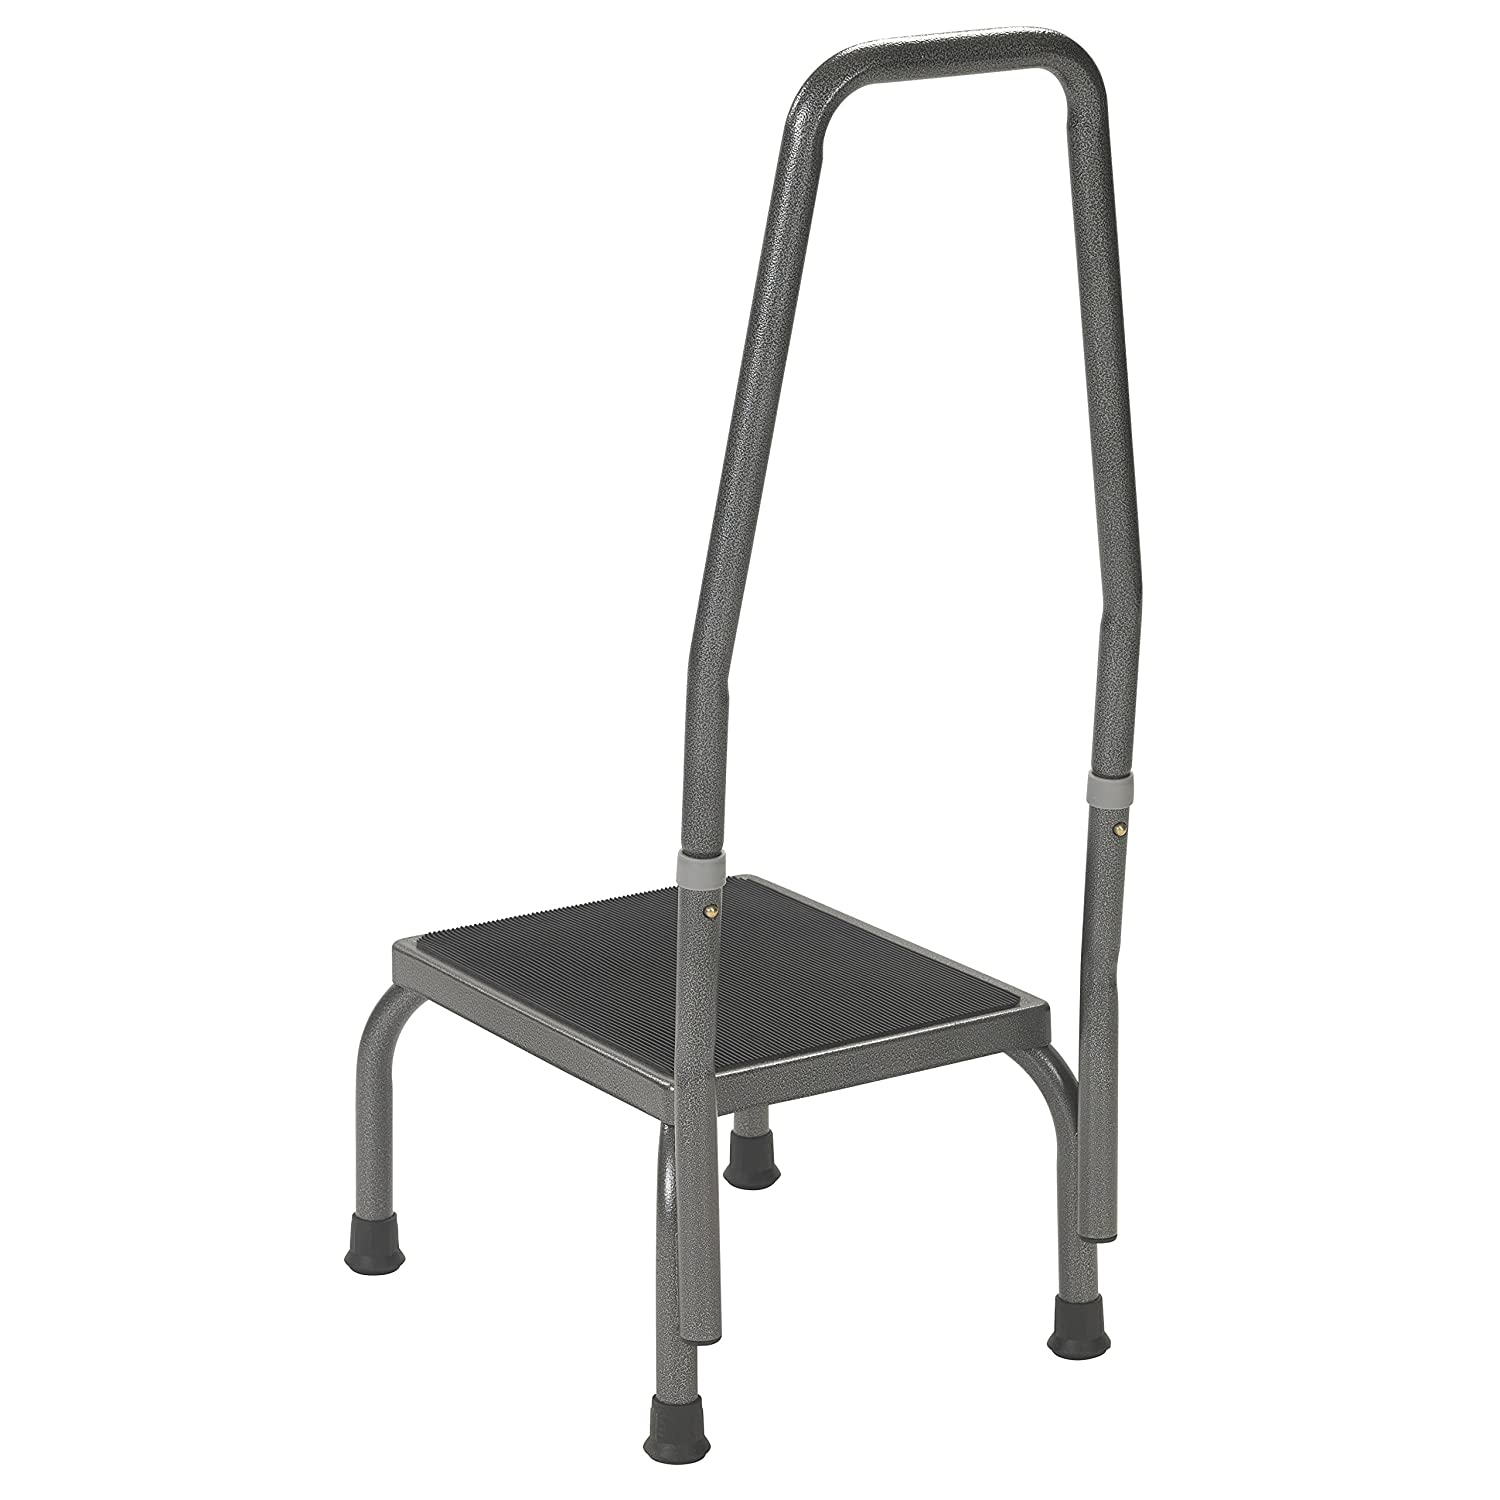 Amazon.com Drive Medical Footstool with Non Skid Rubber Platform Health u0026 Personal Care  sc 1 st  Amazon.com & Amazon.com: Drive Medical Footstool with Non Skid Rubber Platform ... islam-shia.org